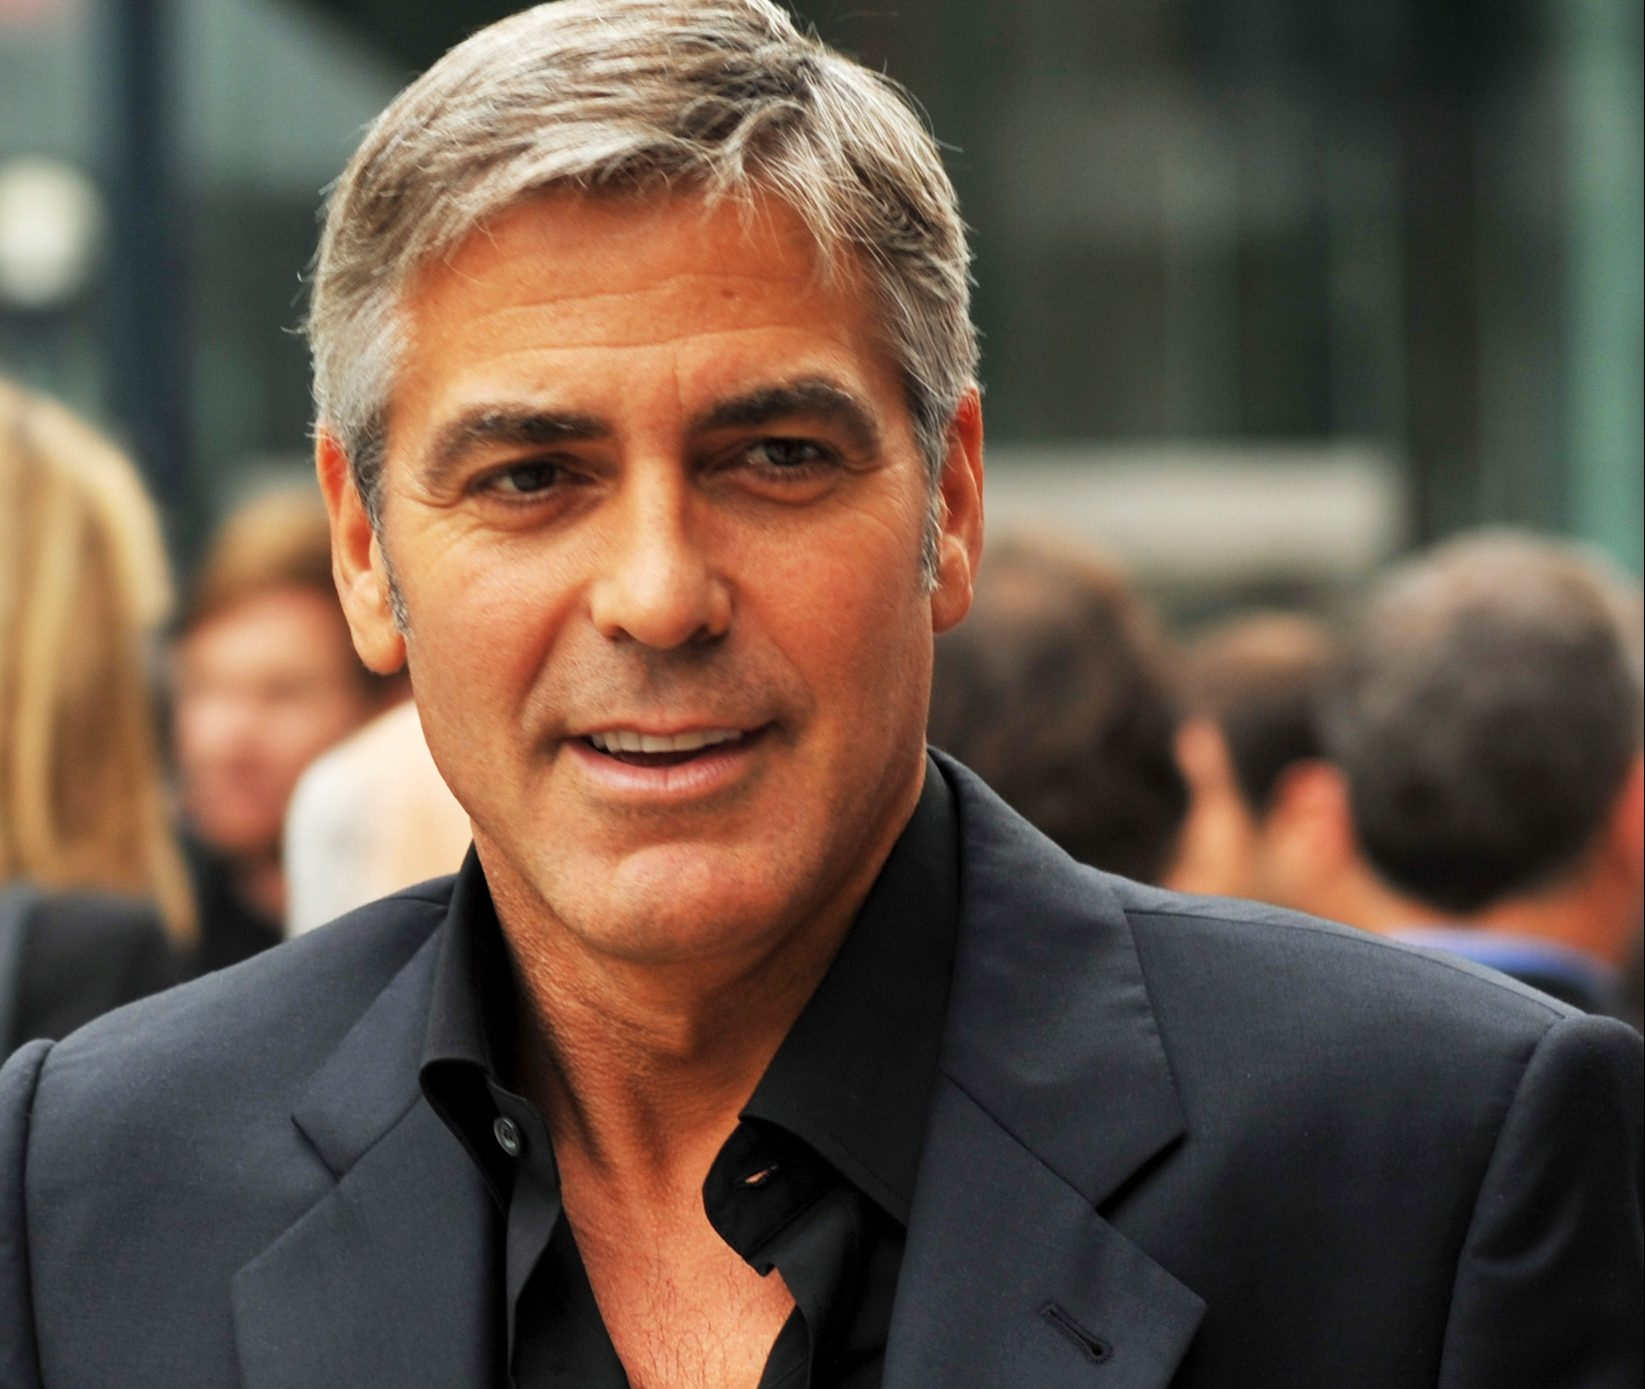 George Clooney 4 The Men Who Stare at Goats TIFF09 cropped e1616491088698 10 Things You Probably Didn't Know About George Clooney